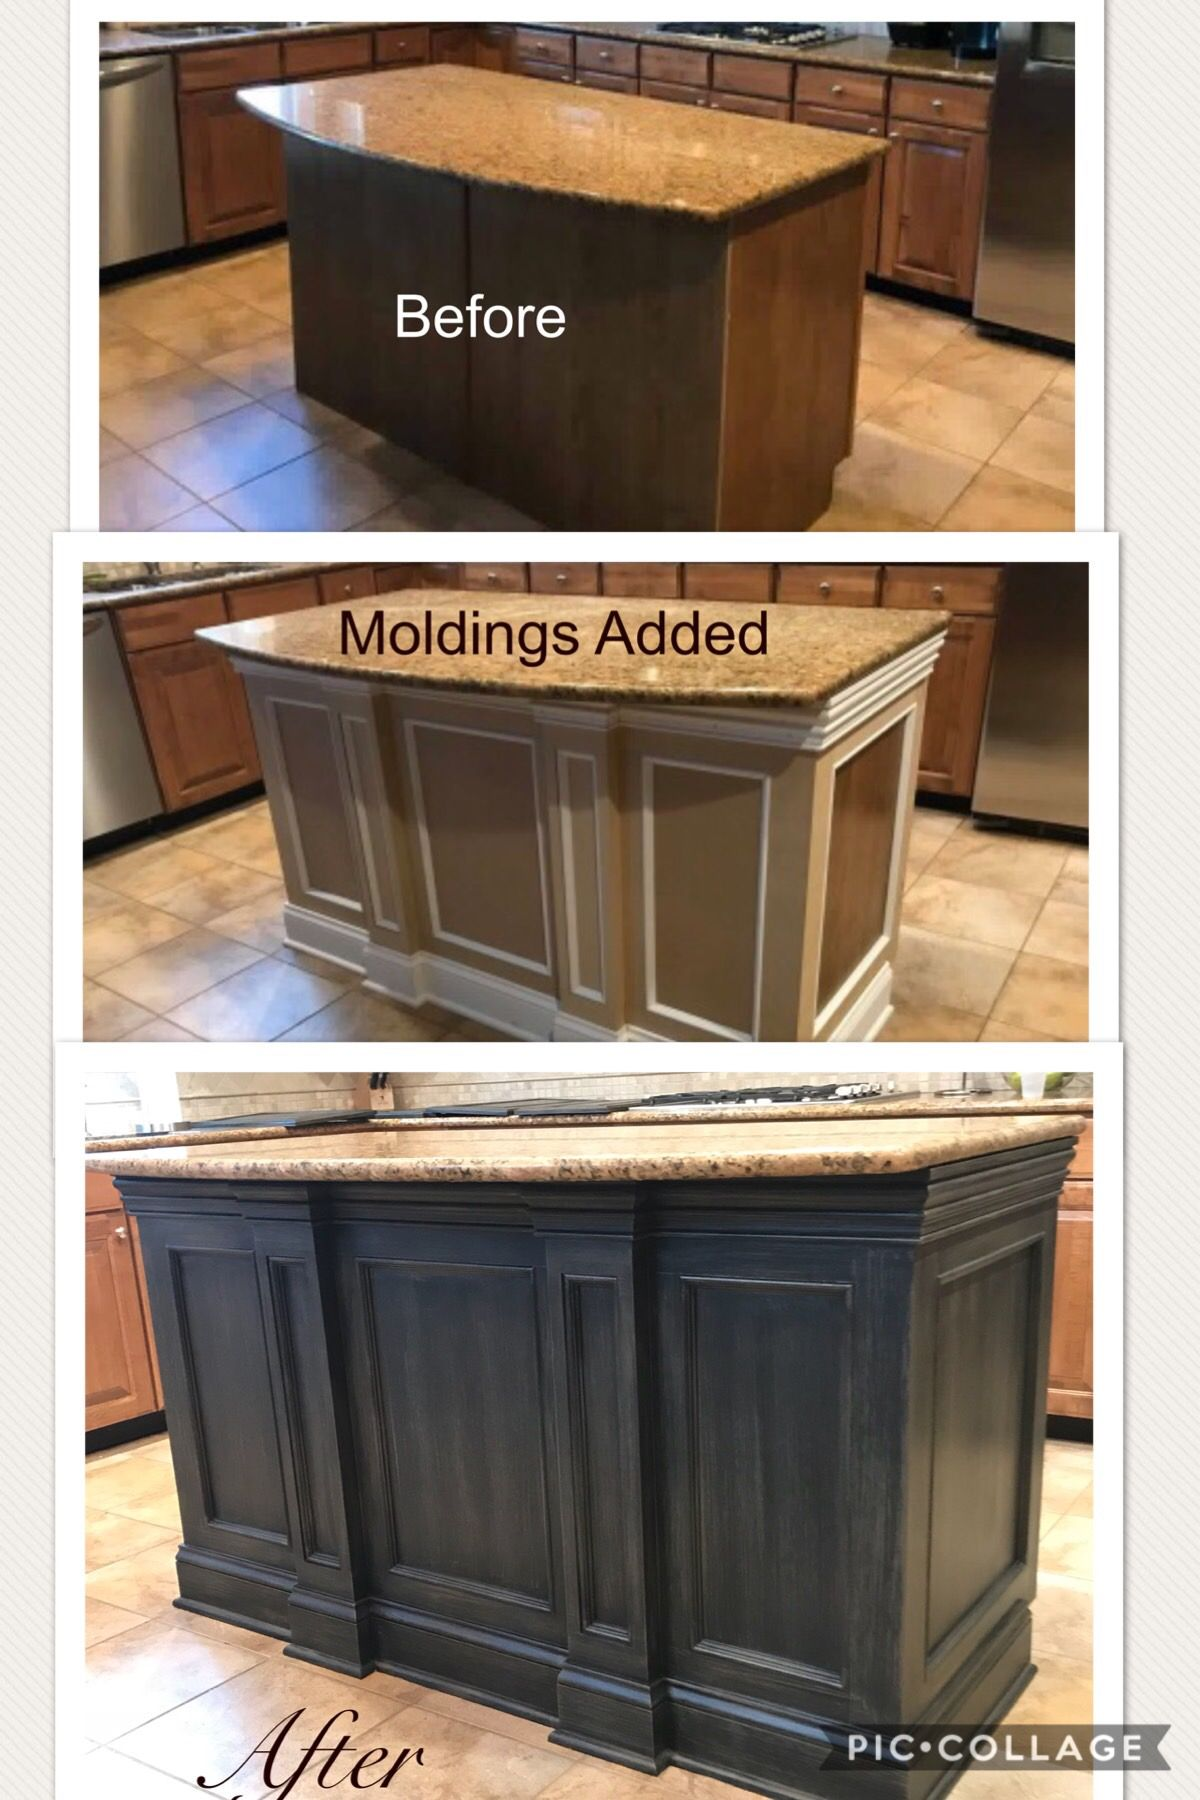 Restauration Meuble De Cuisine kitchen island transformation from start to finish! painted